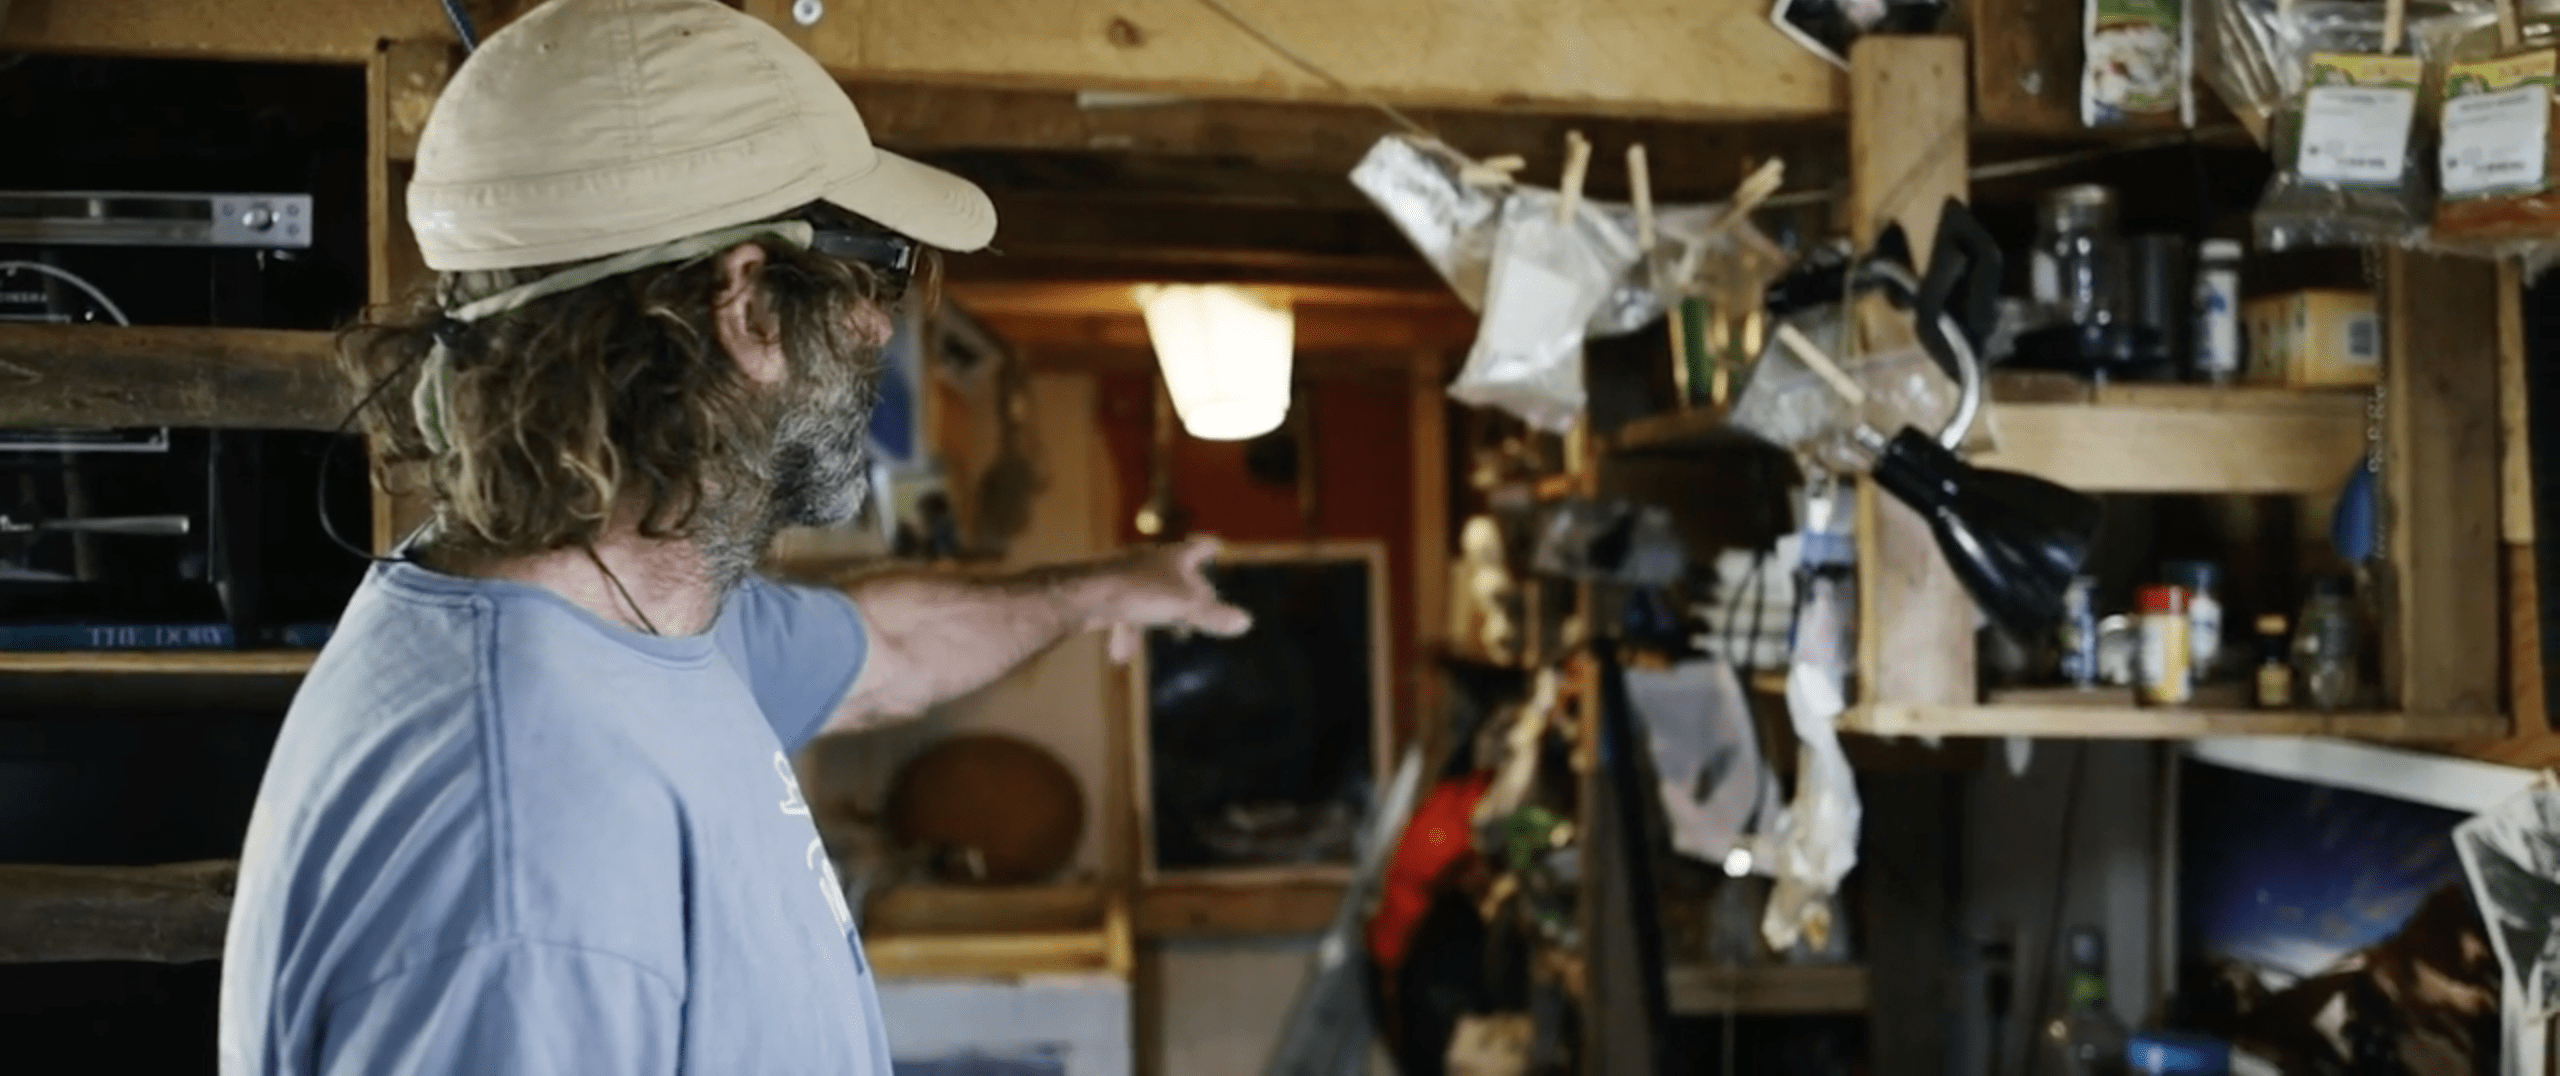 John Shocklee lives in a simple, tiny place. But he haves everything he needs.